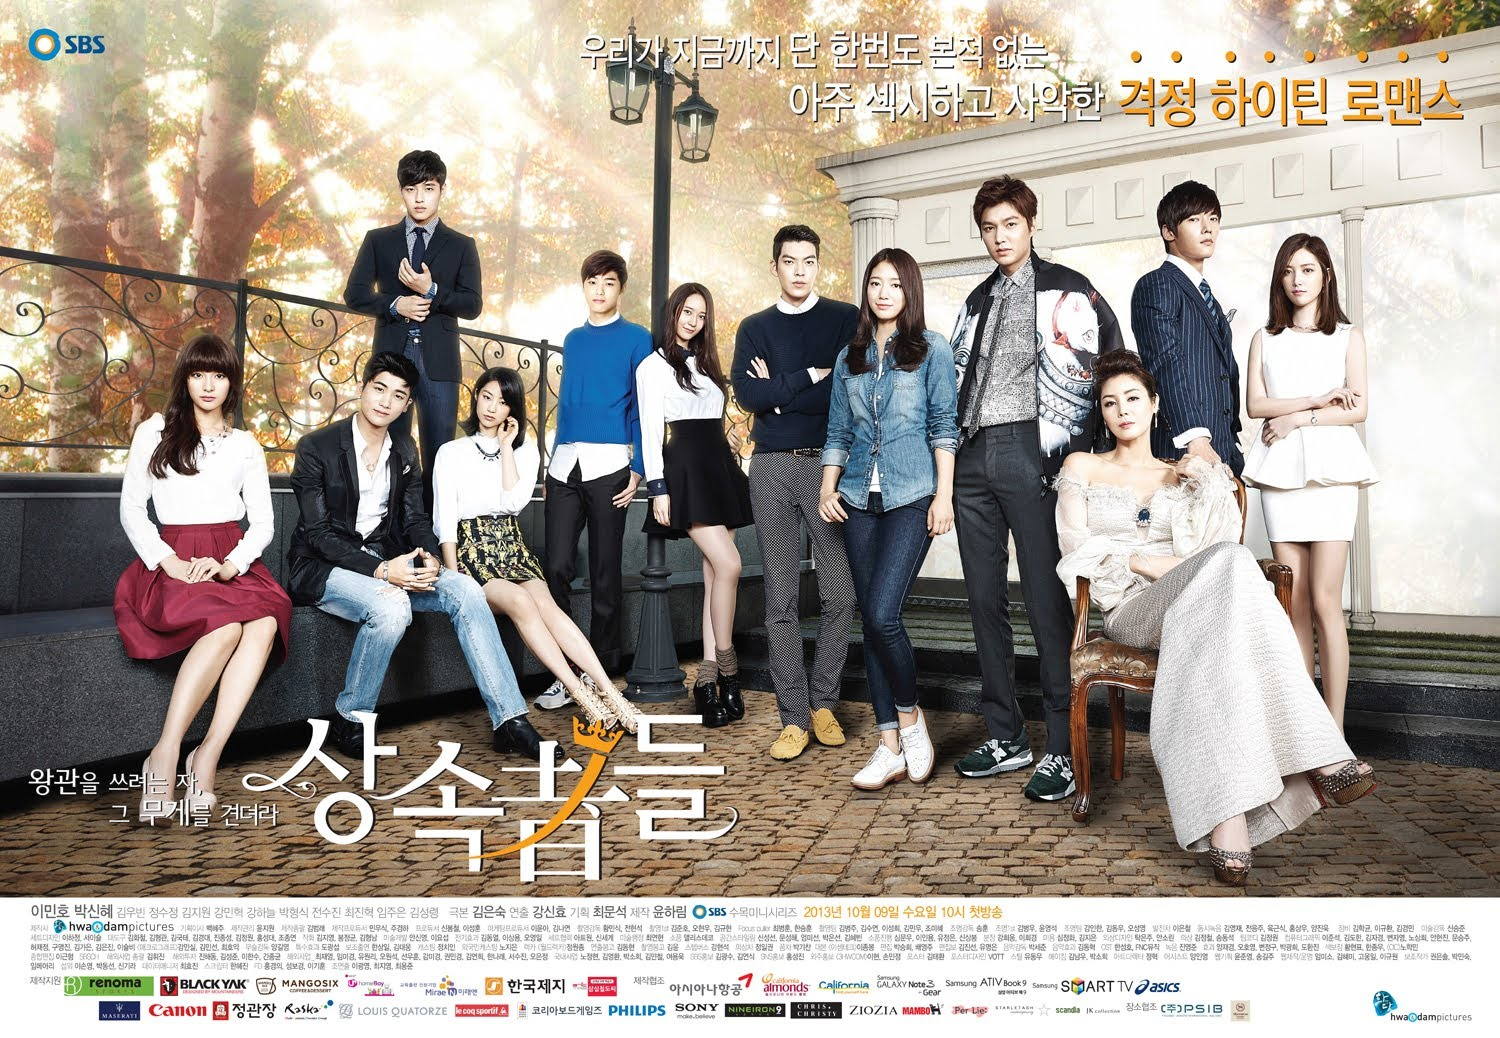 http://static3.wikia.nocookie.net/__cb20131004192713/drama/es/images/8/80/The_Heirs.jpg